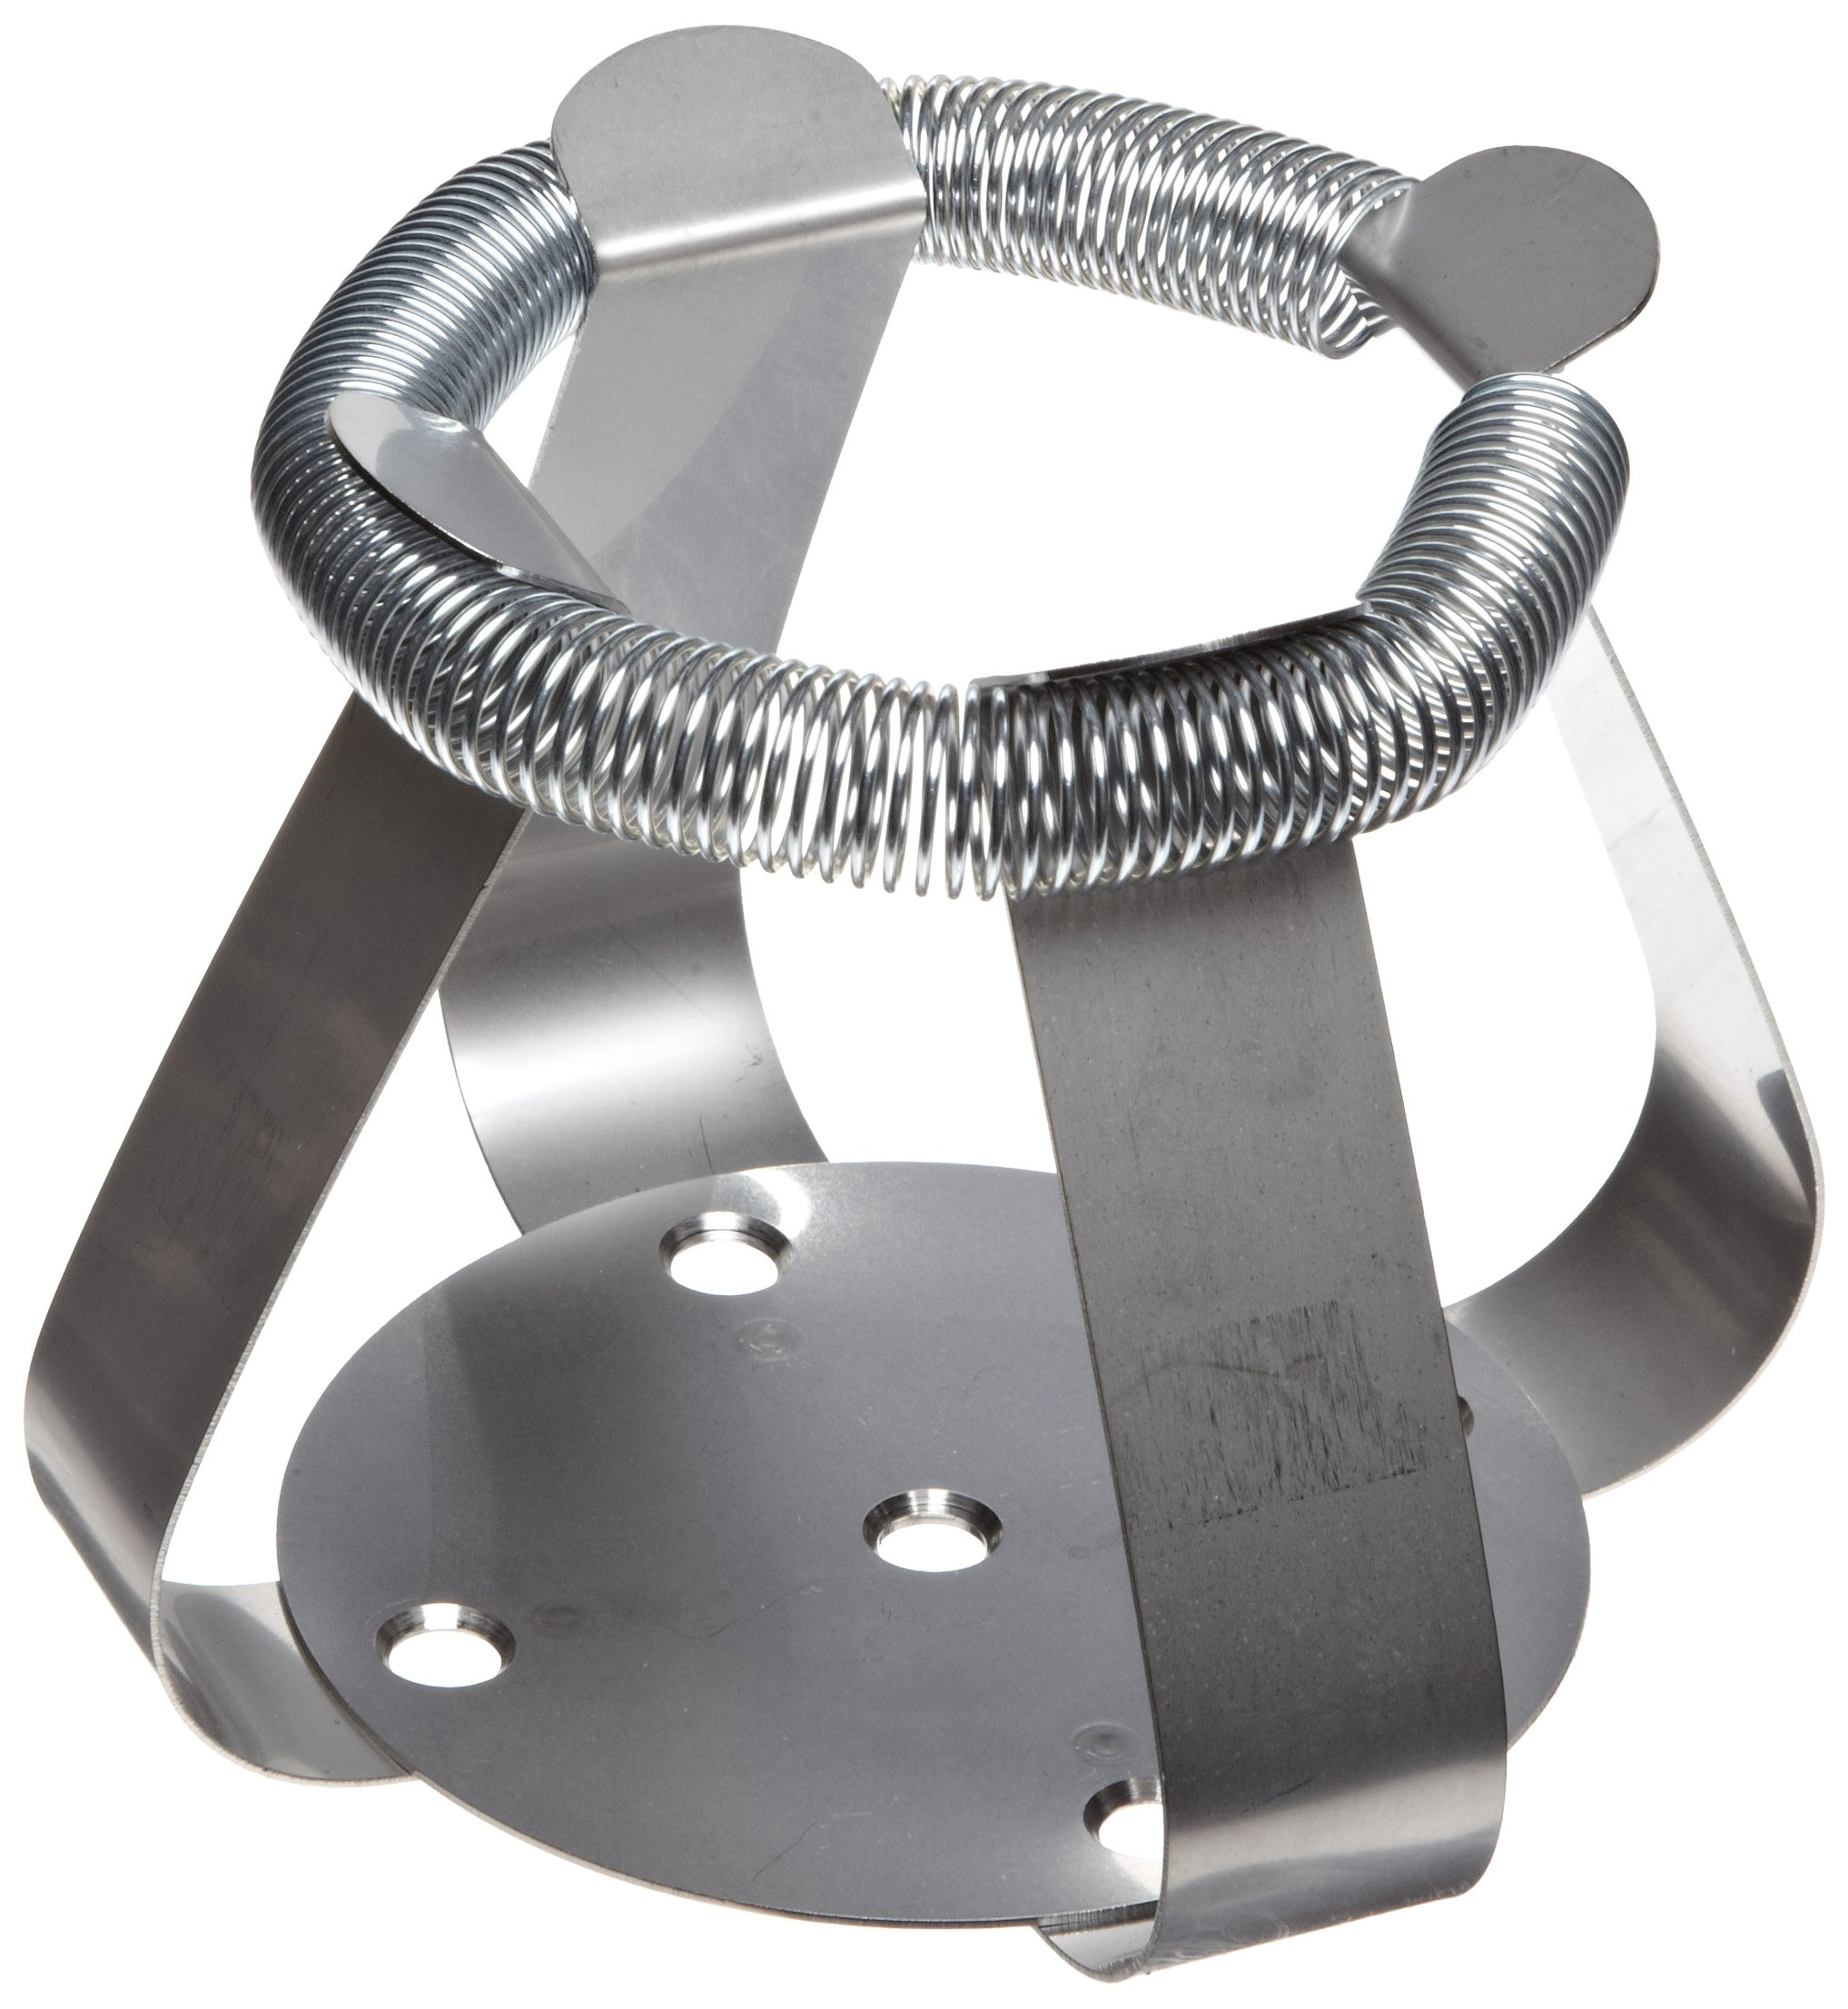 Talboys 980086 Flask Clamp, Stainless Steel, For 1L Erlenmeyer Flask